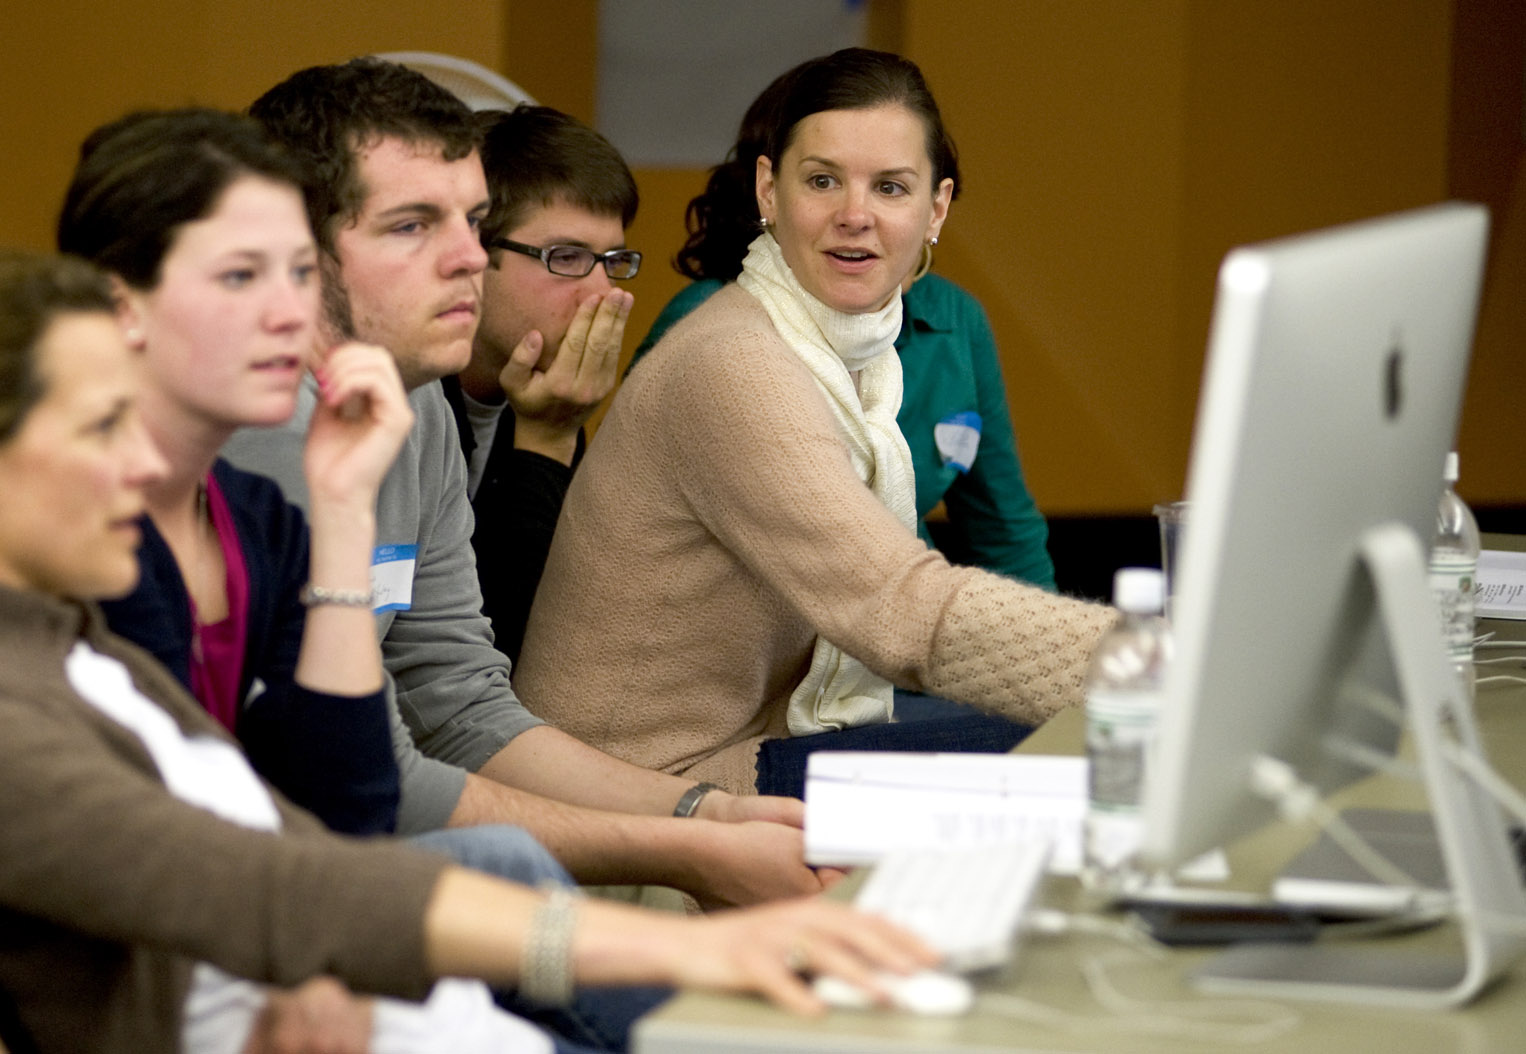 Jennifer Poggi (right, in scarf) with Ohio University students during NPPA's Best Of Photojournalism judging in 2009. Photograph by Jennifer Cecil